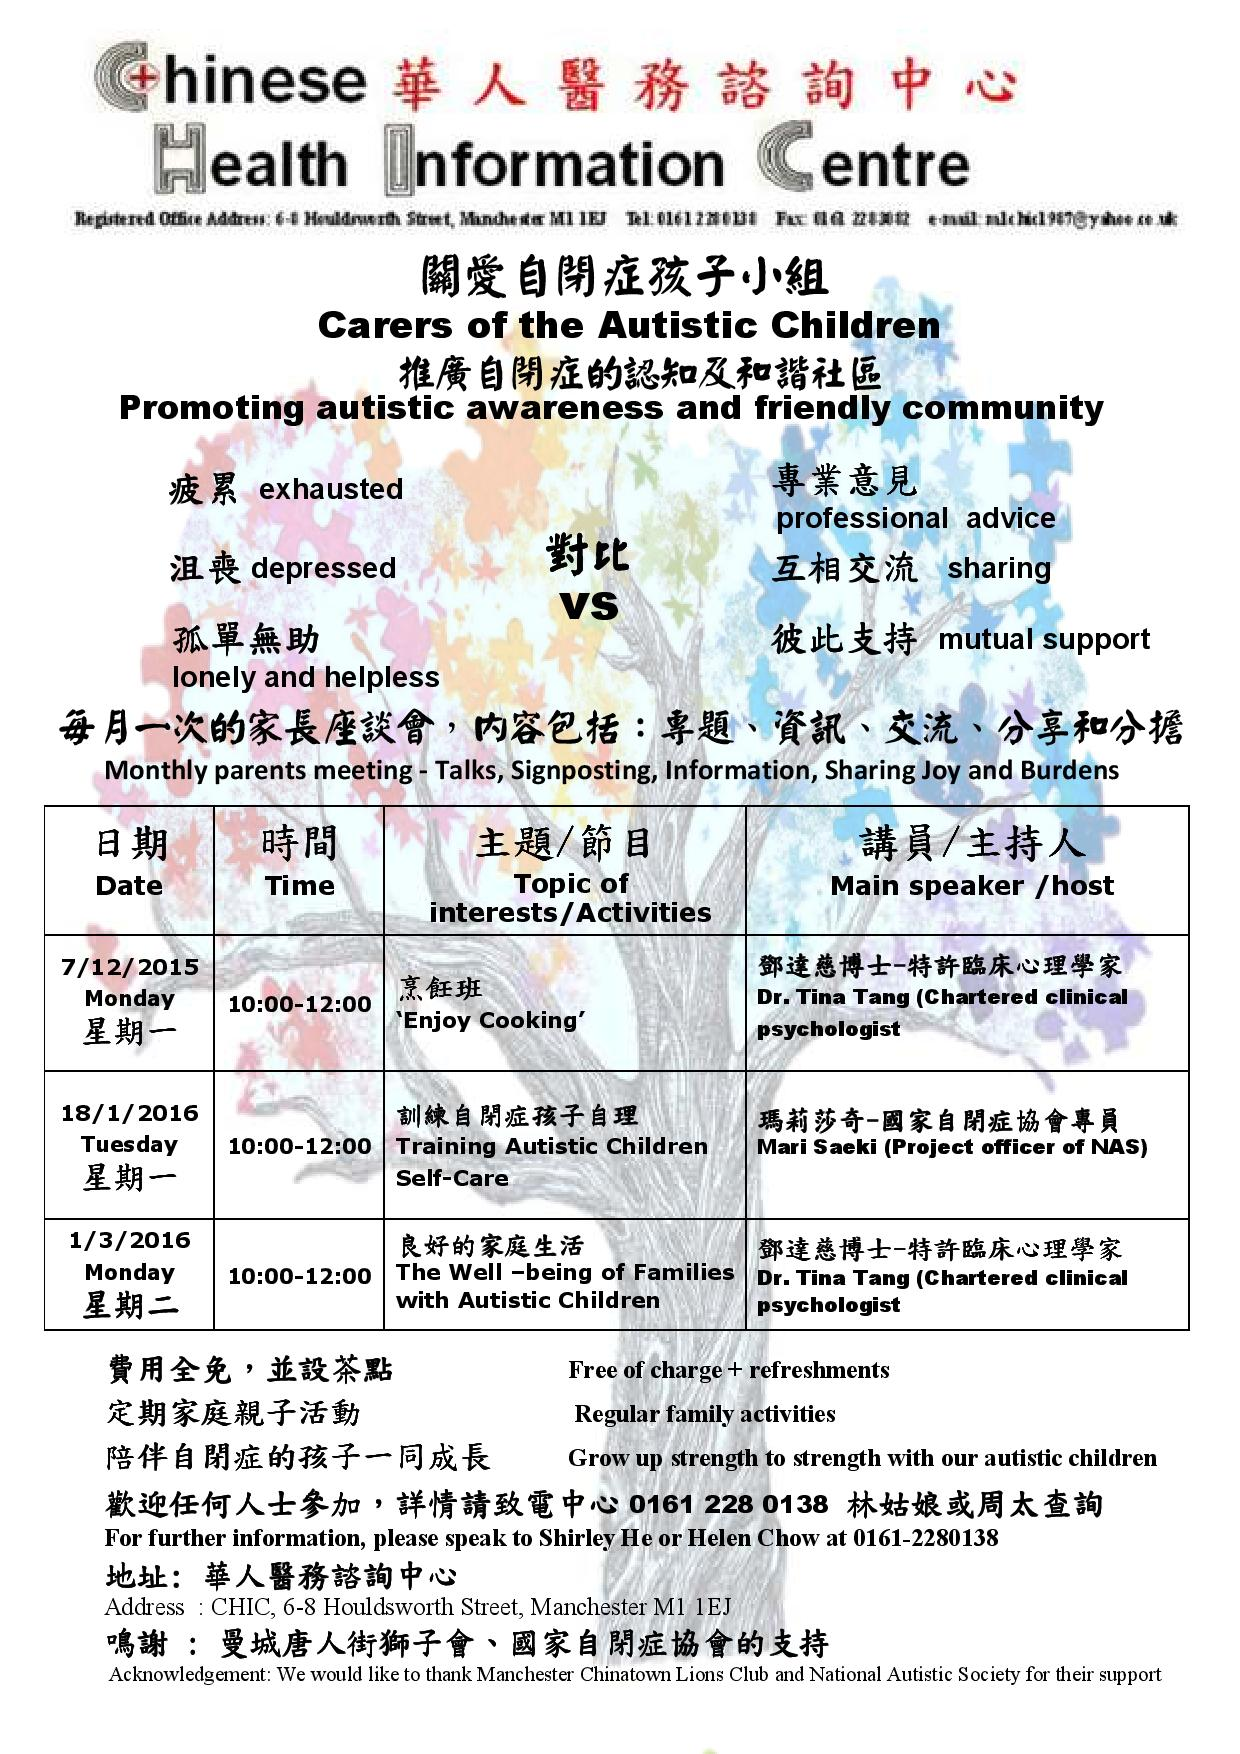 Carers of the Autistic Children